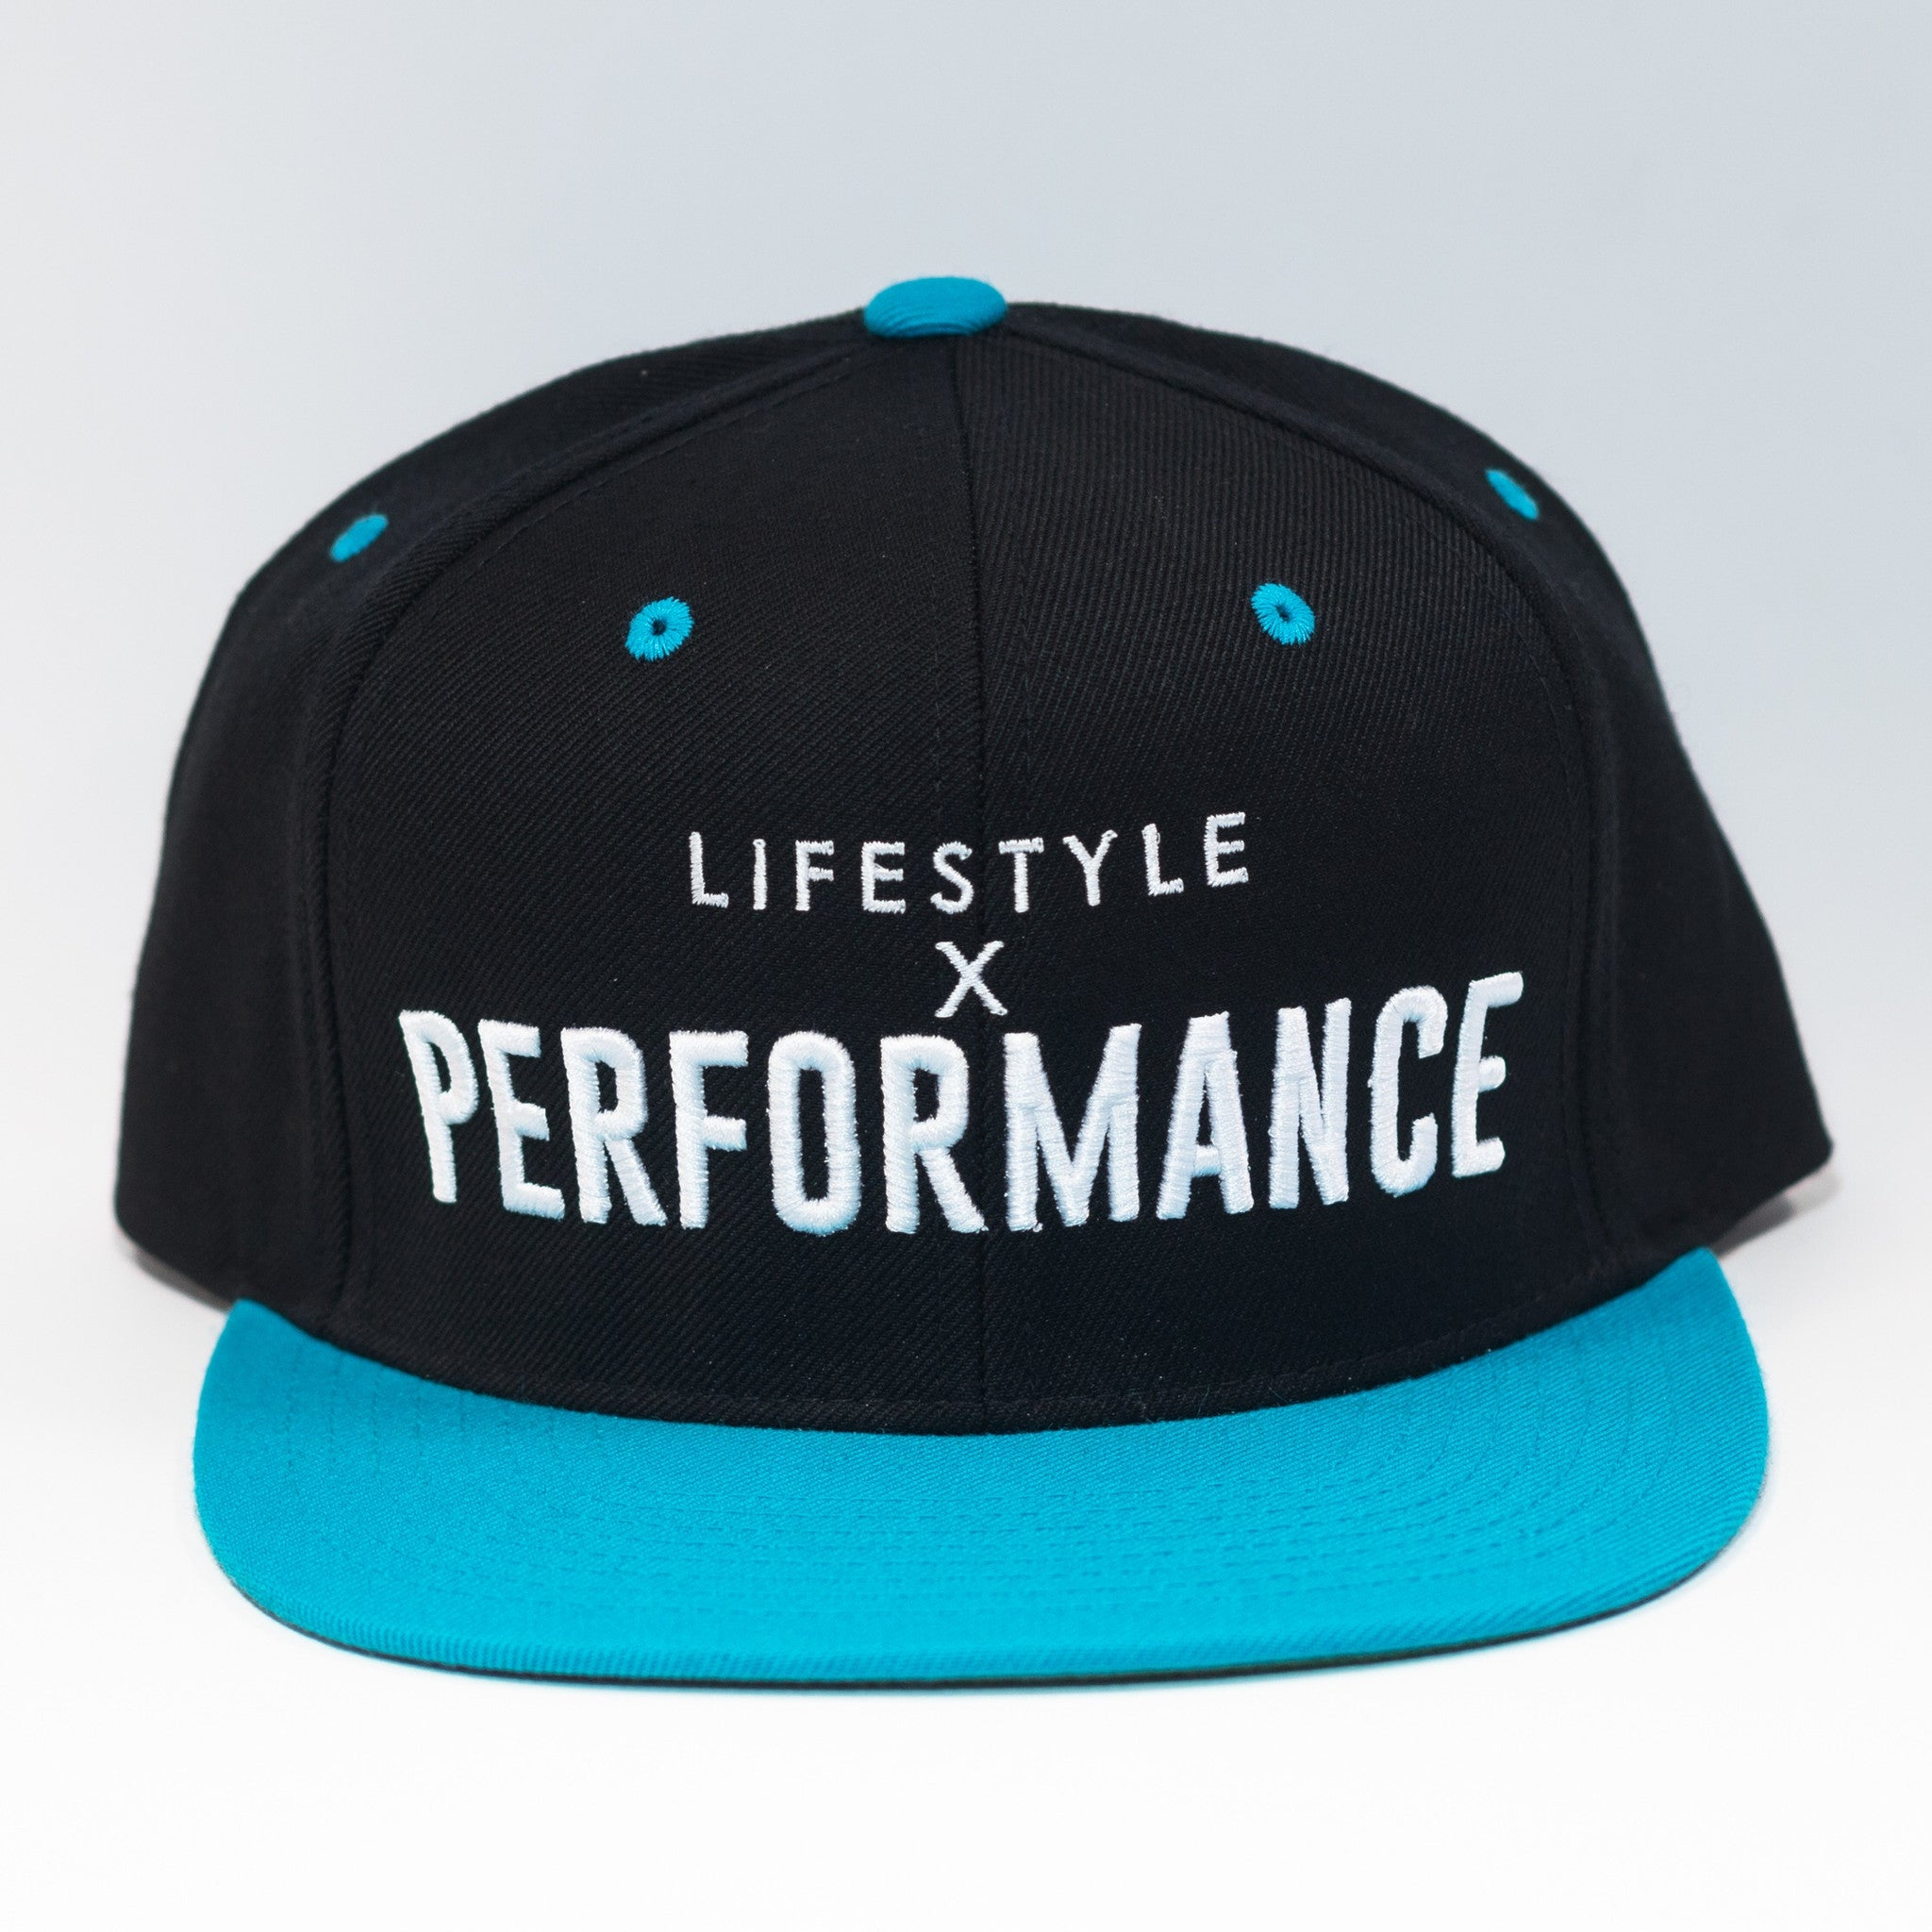 Lifestyle X Performance Snapback - Black/Teal/White